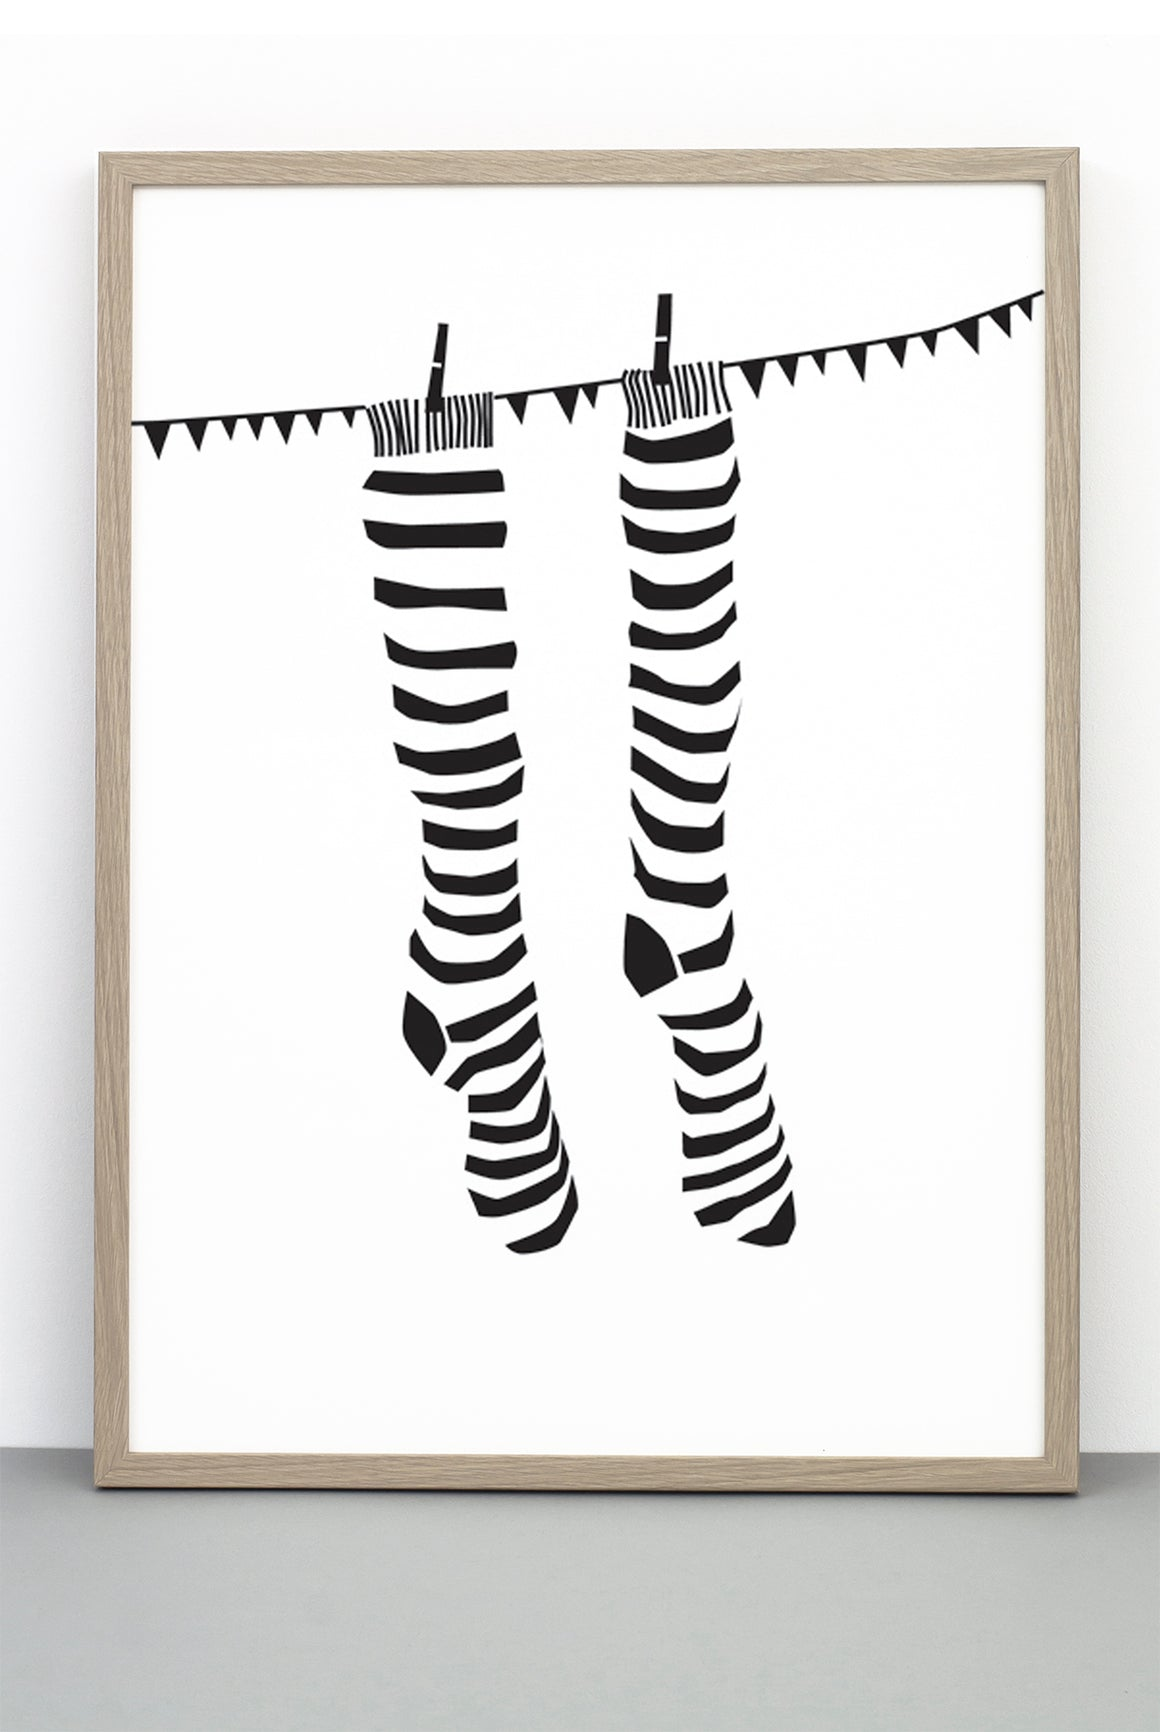 WHOLESALE KNOCK YOUR SOCKS OFF PRINT, AN ILLUSTRATIVE BLACK AND WHITE MONOCHROME POSTER